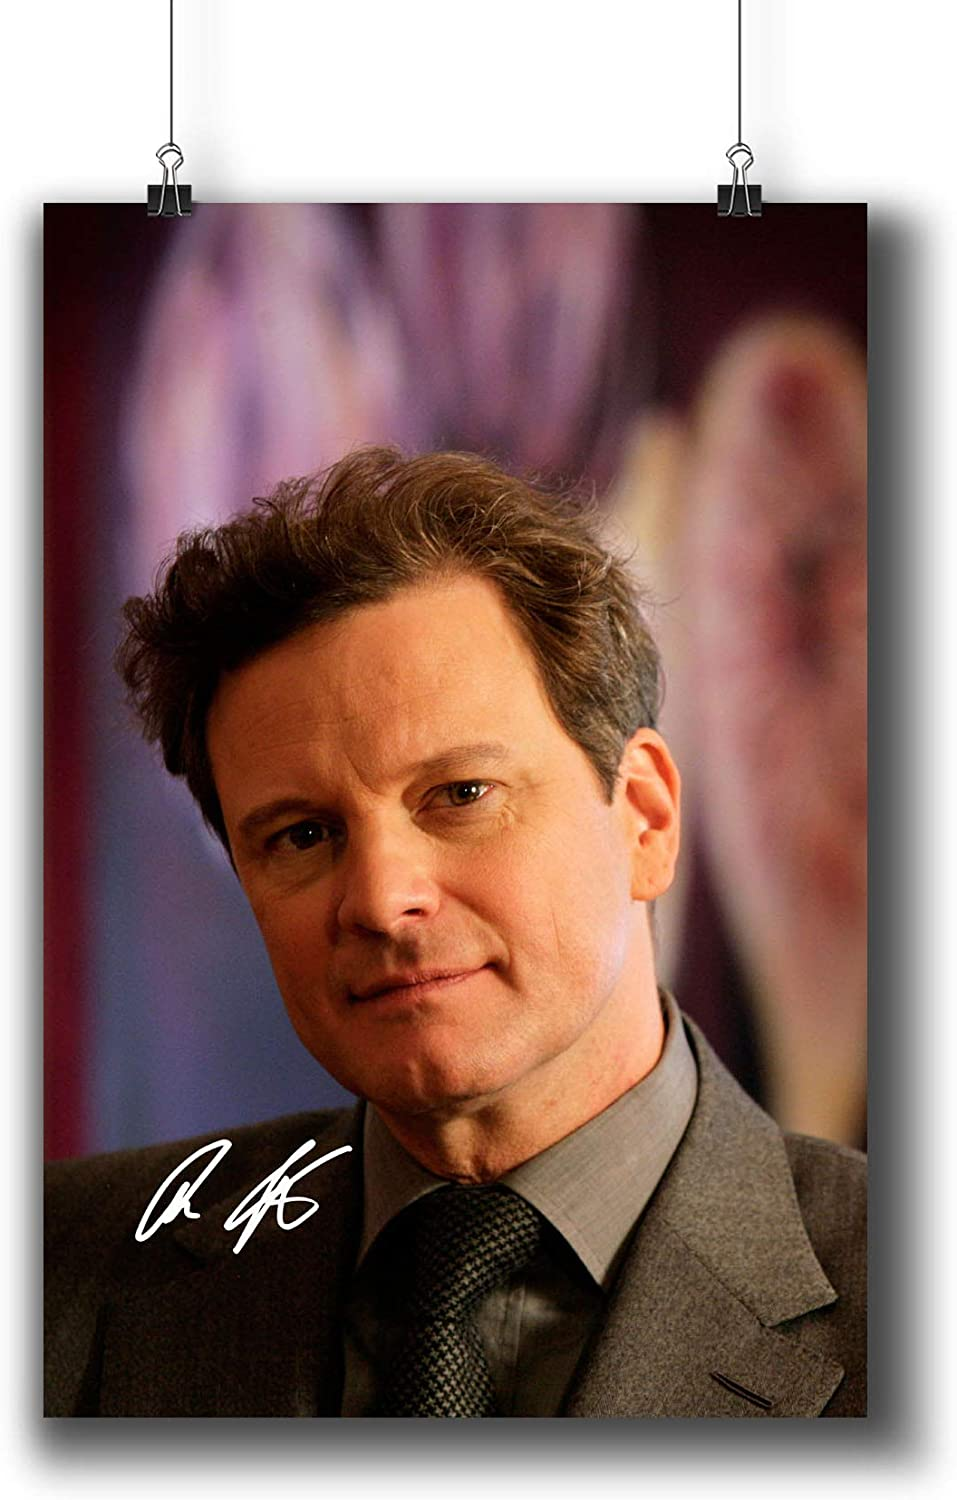 Colin Firth Actor Movie Photo Poster Prints 006-001 Reprint Signed,Wall Art Decor for Dorm Bedroom Living Room (A3|11x17inch|29x42cm)